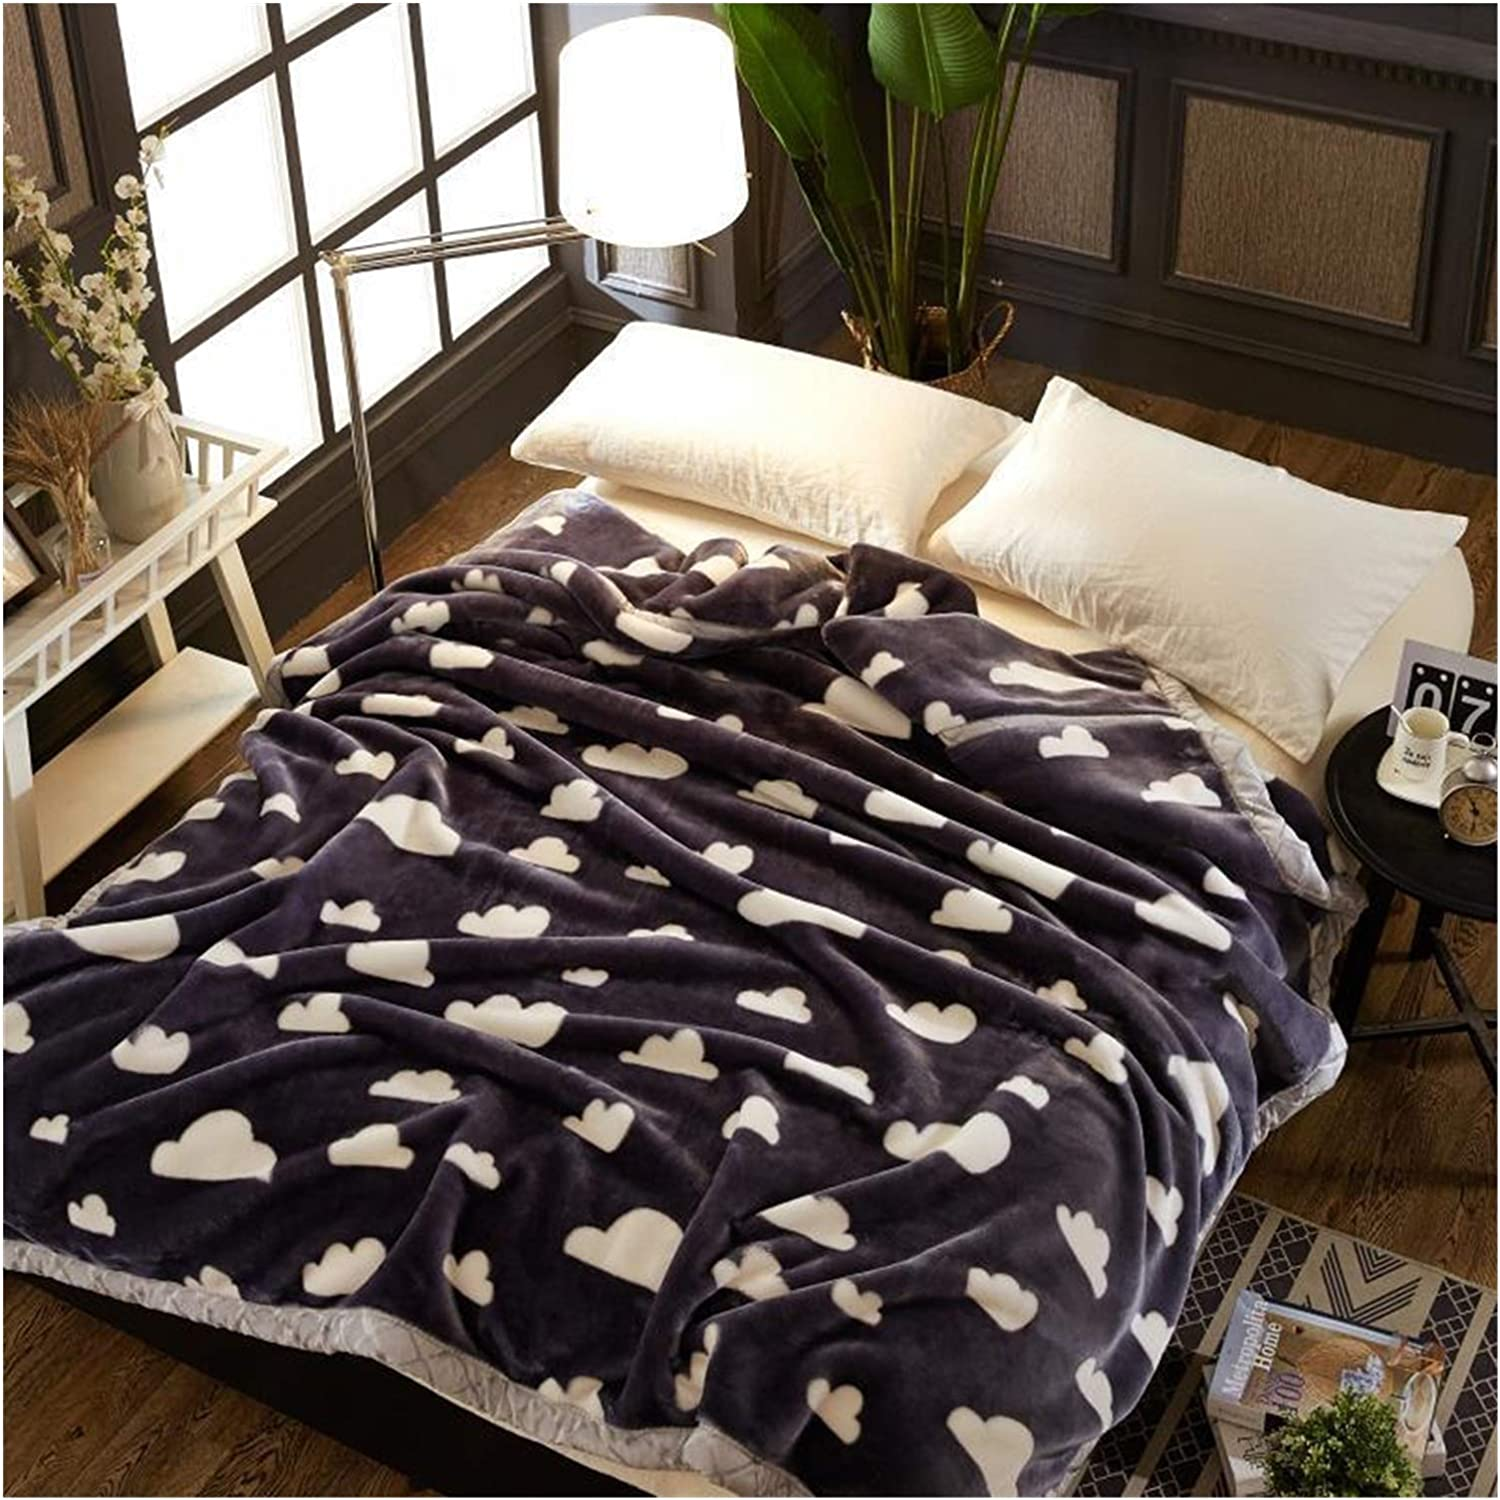 JDJD Double Layer Max 72% OFF Winter Thicken Blanket Plush Quantity limited Raschel Weighted